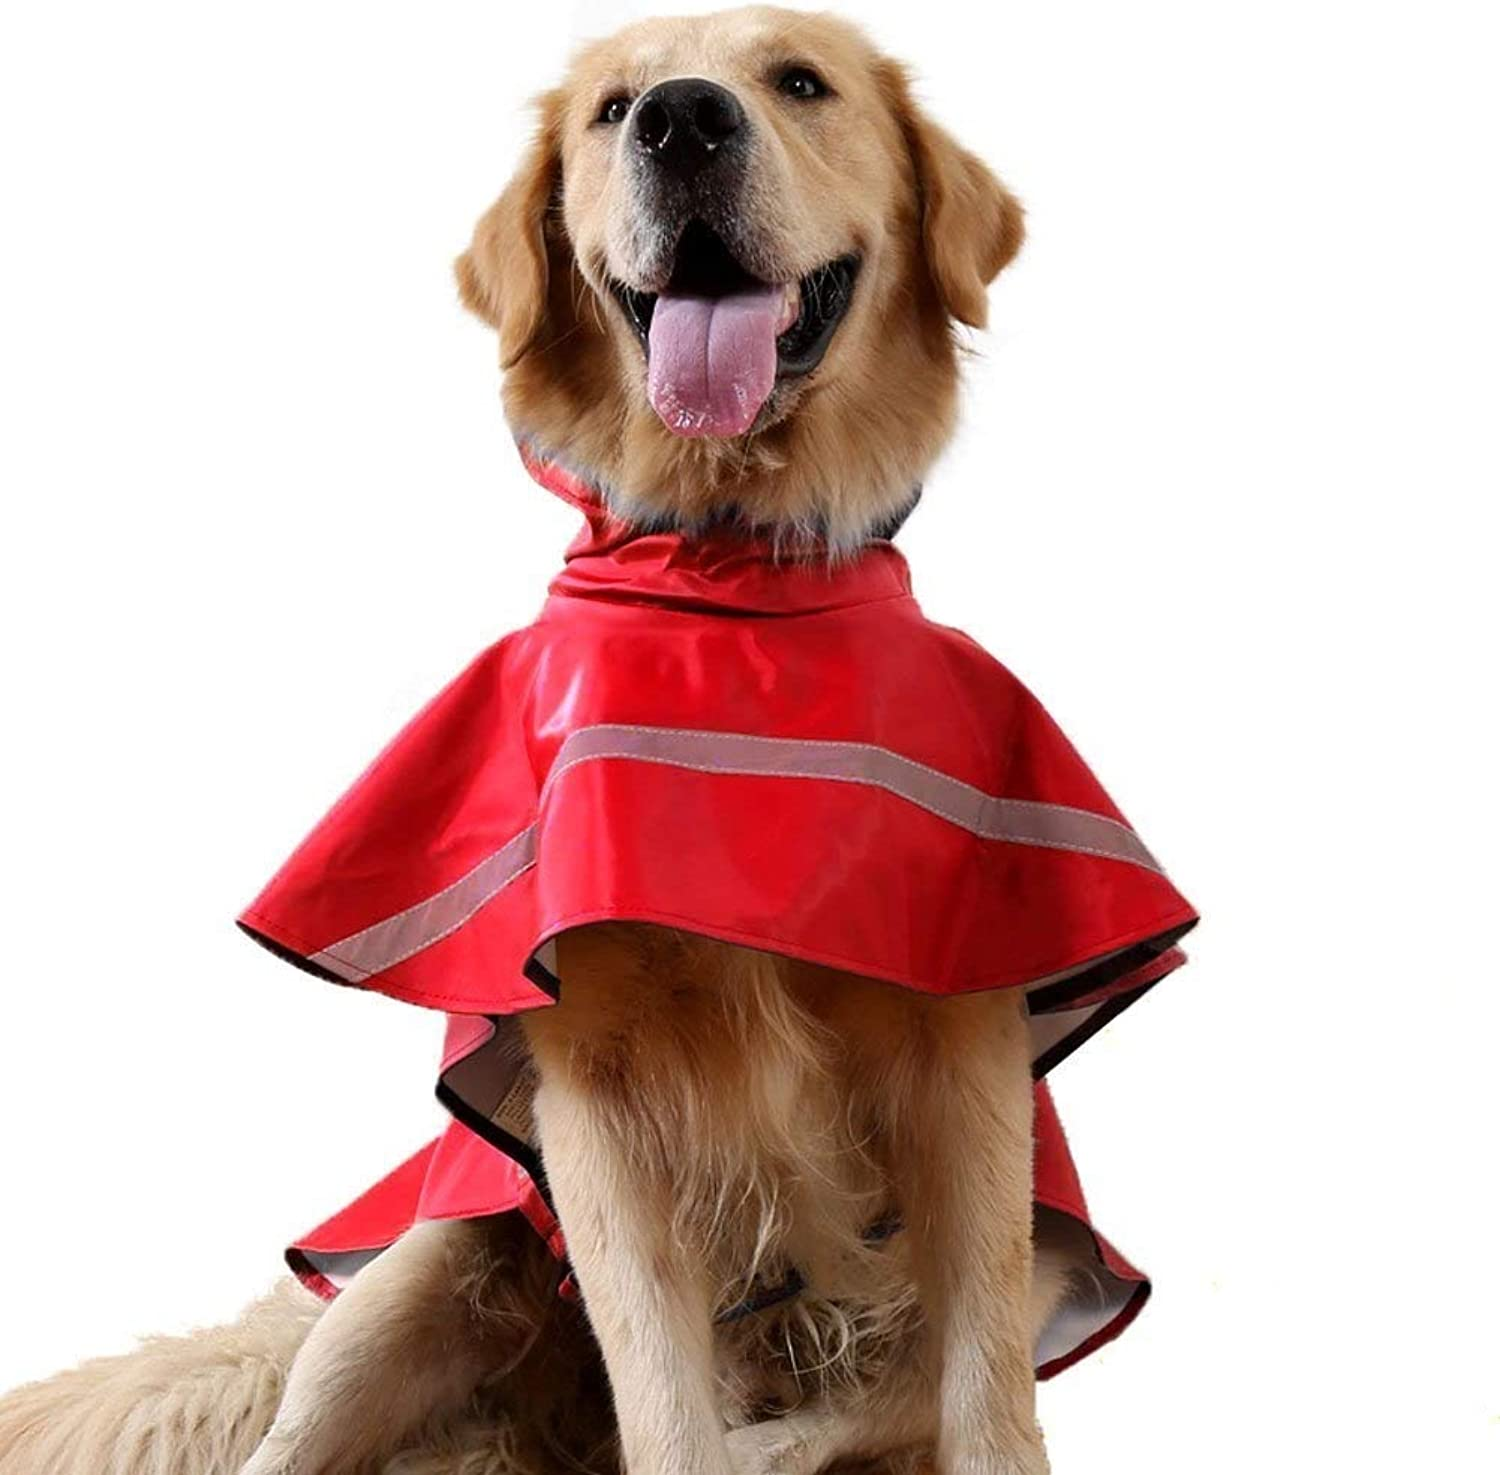 b9fc7bf0bf7a3 Raincoat Red Adjustable Pet Dog Raincoat with Reflective Safe Strips ...